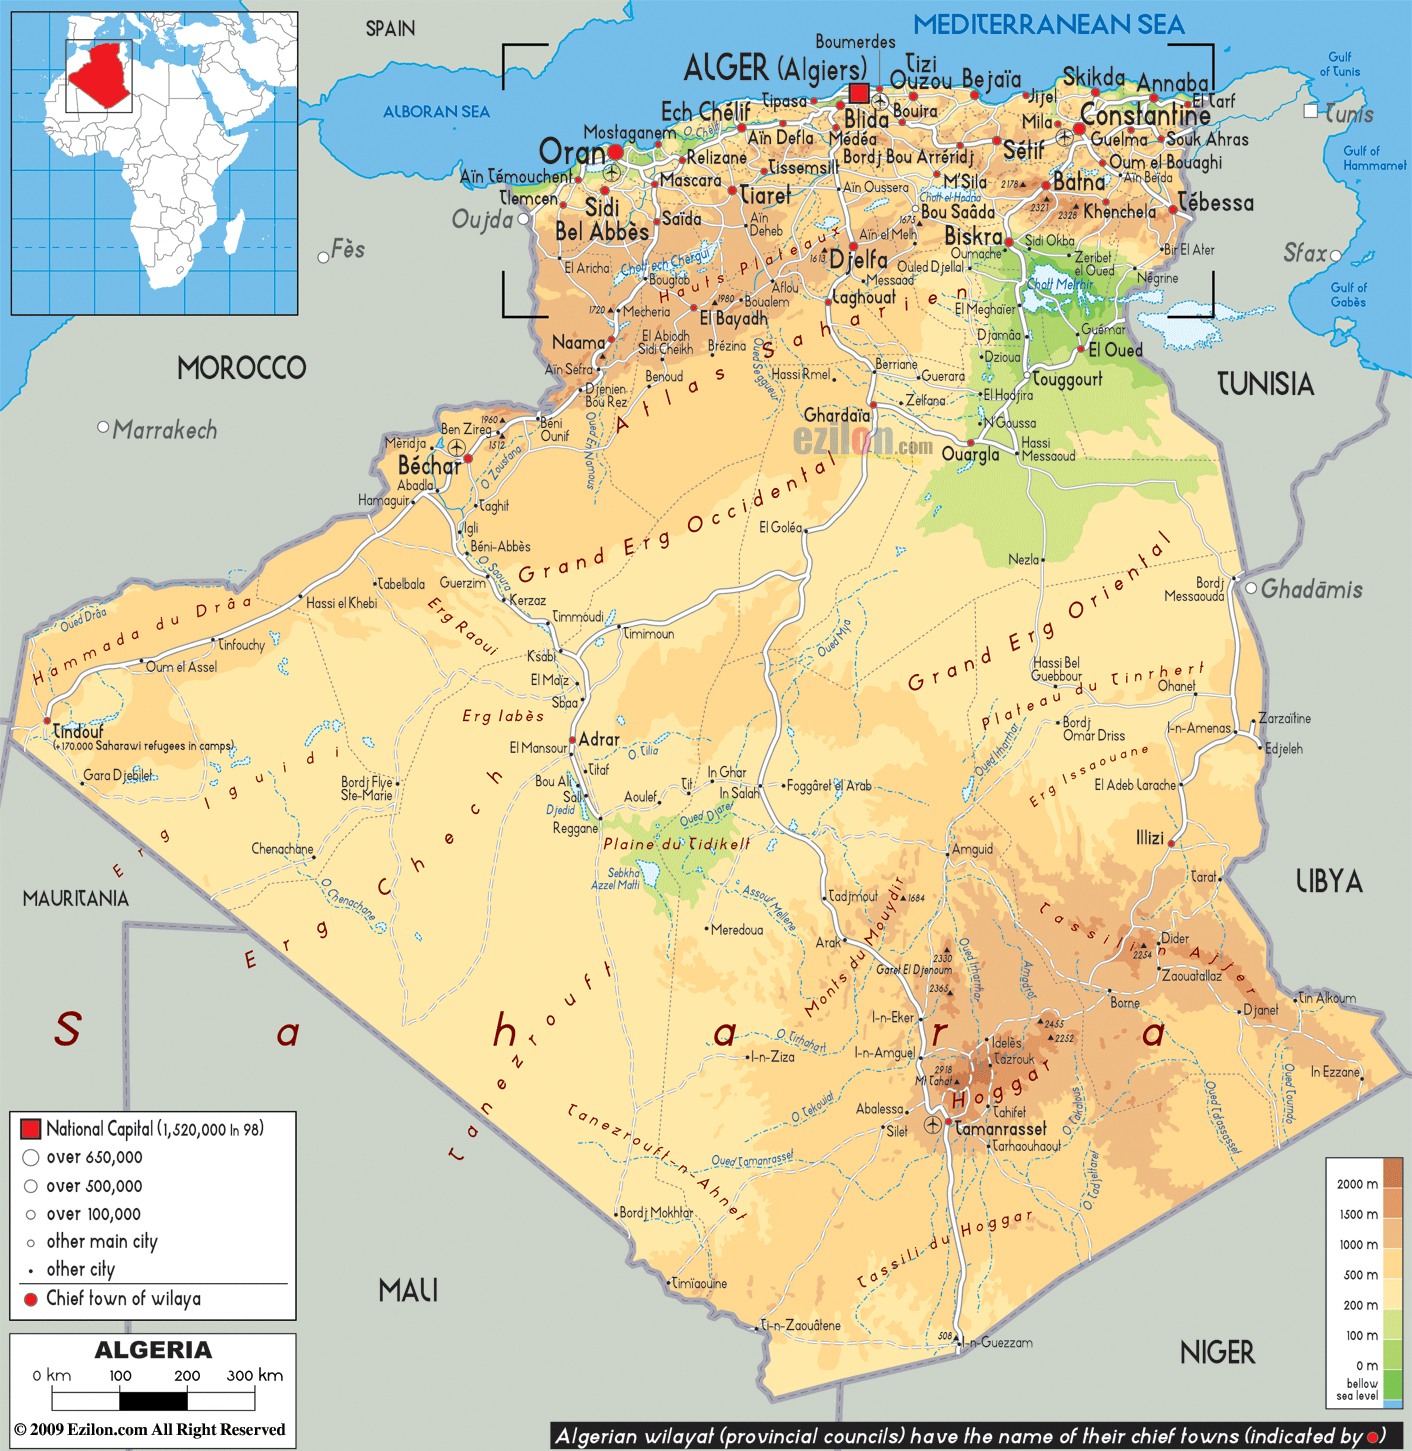 maps of algeria  map library  maps of the world - large physical and road map of algeria